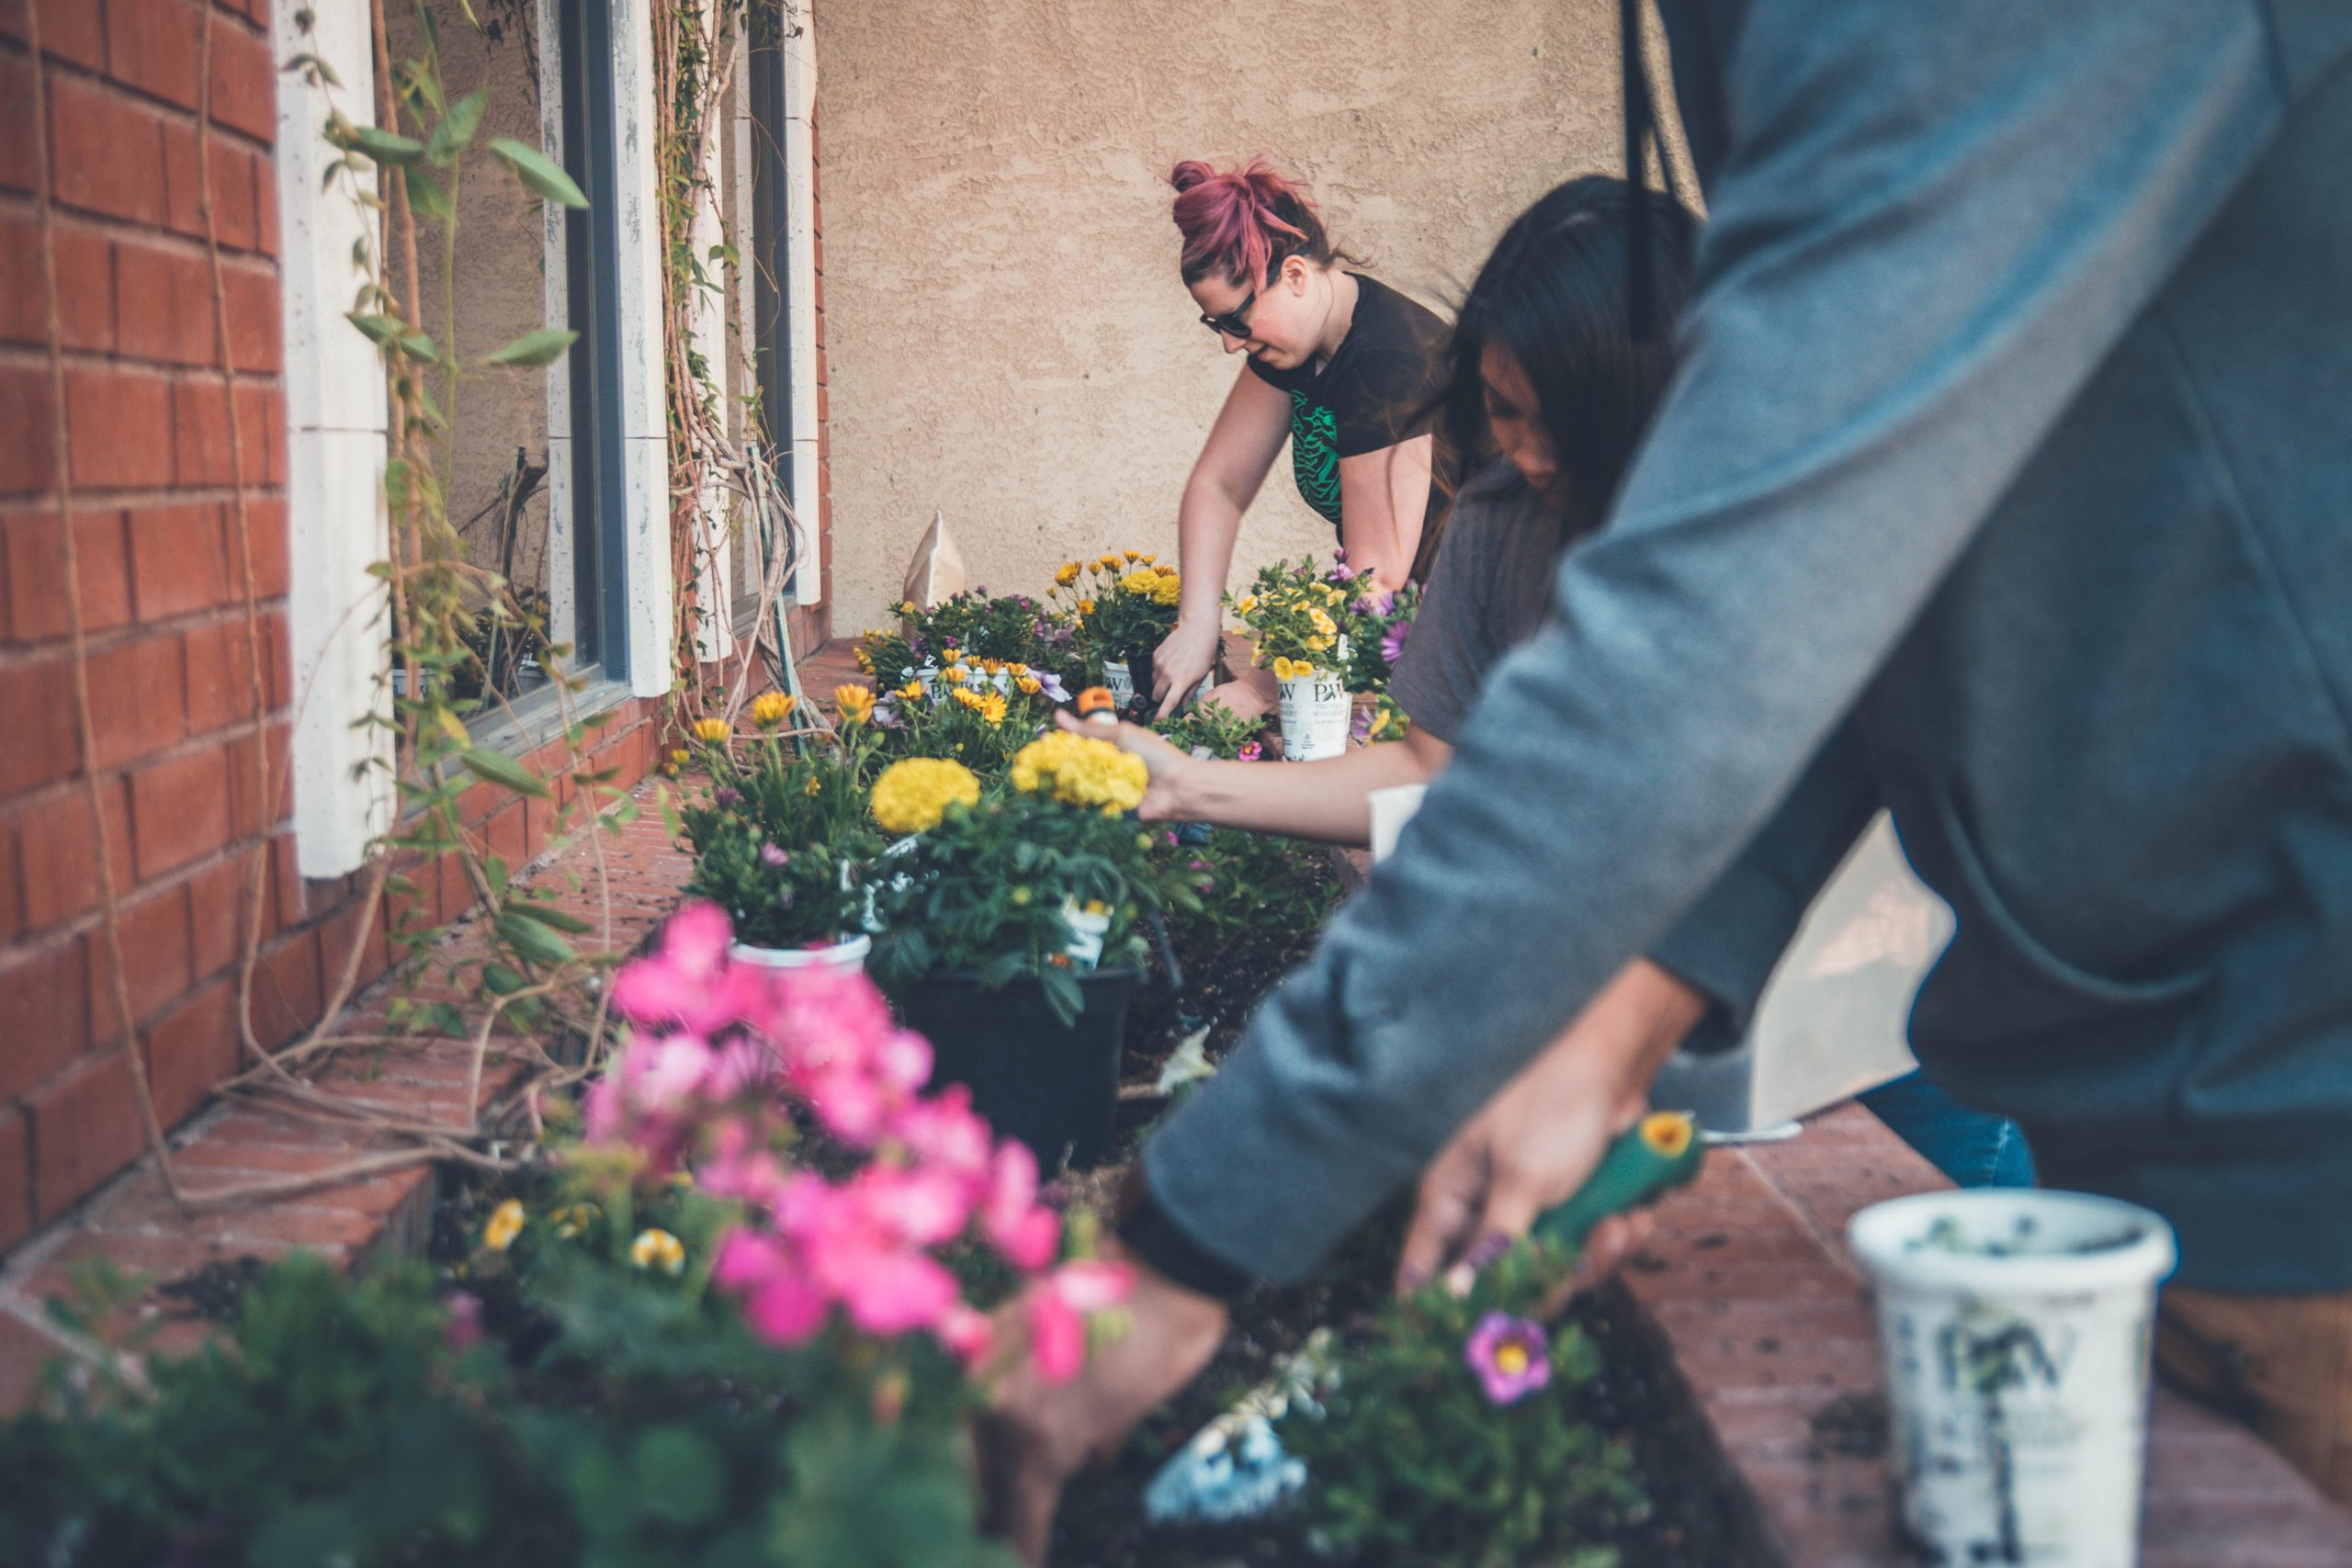 A group of people gardening in flowerboxes